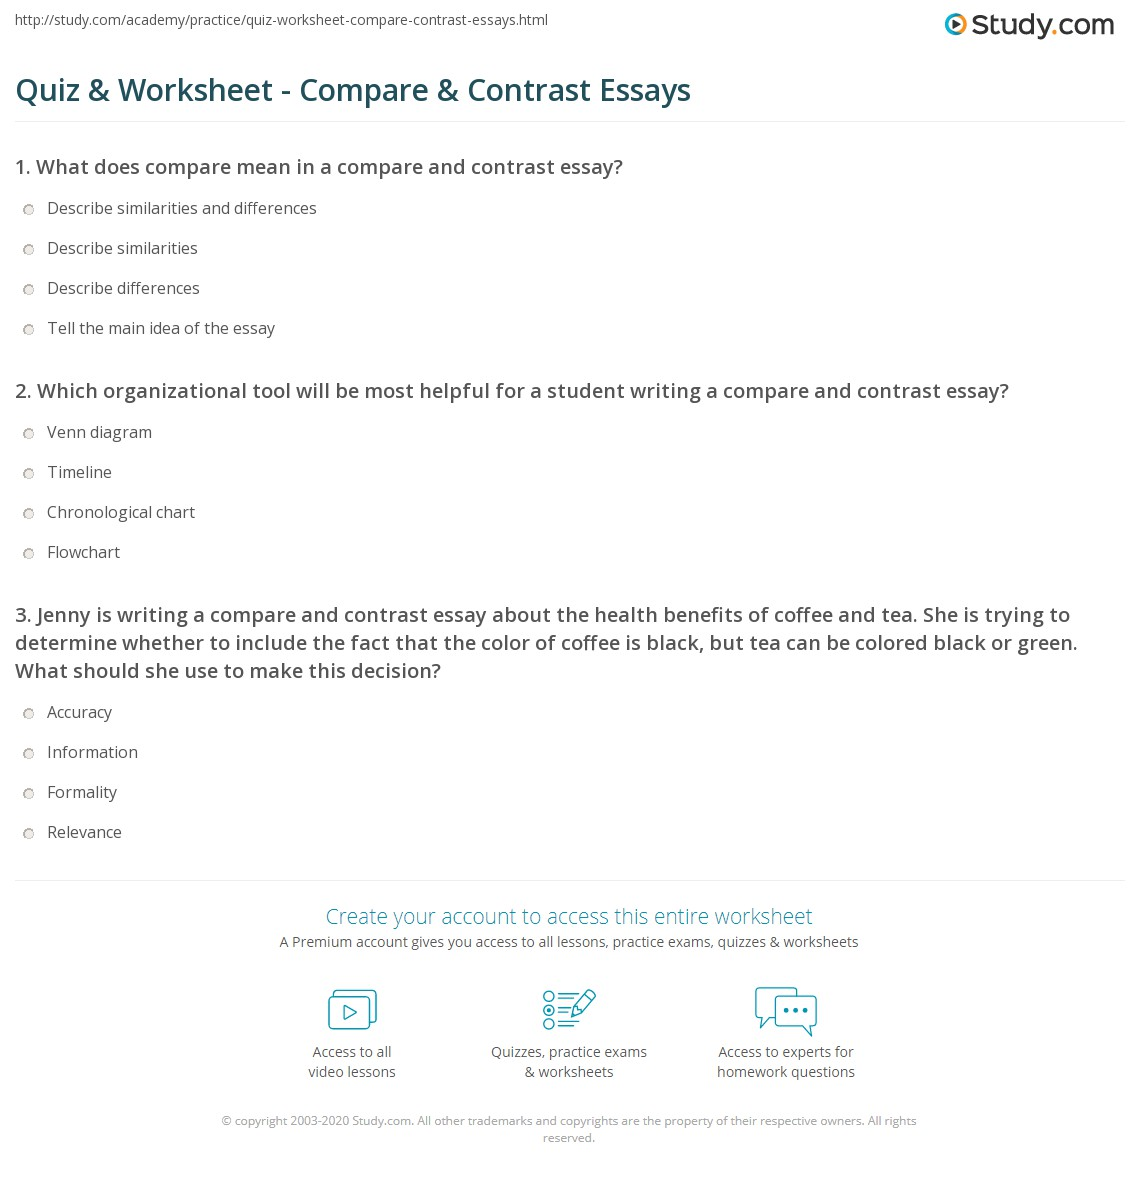 compare contrast essay examples high school compare and contrast  also compare and contrast essay examples for high school example of a quizworksheet compare contrast essays